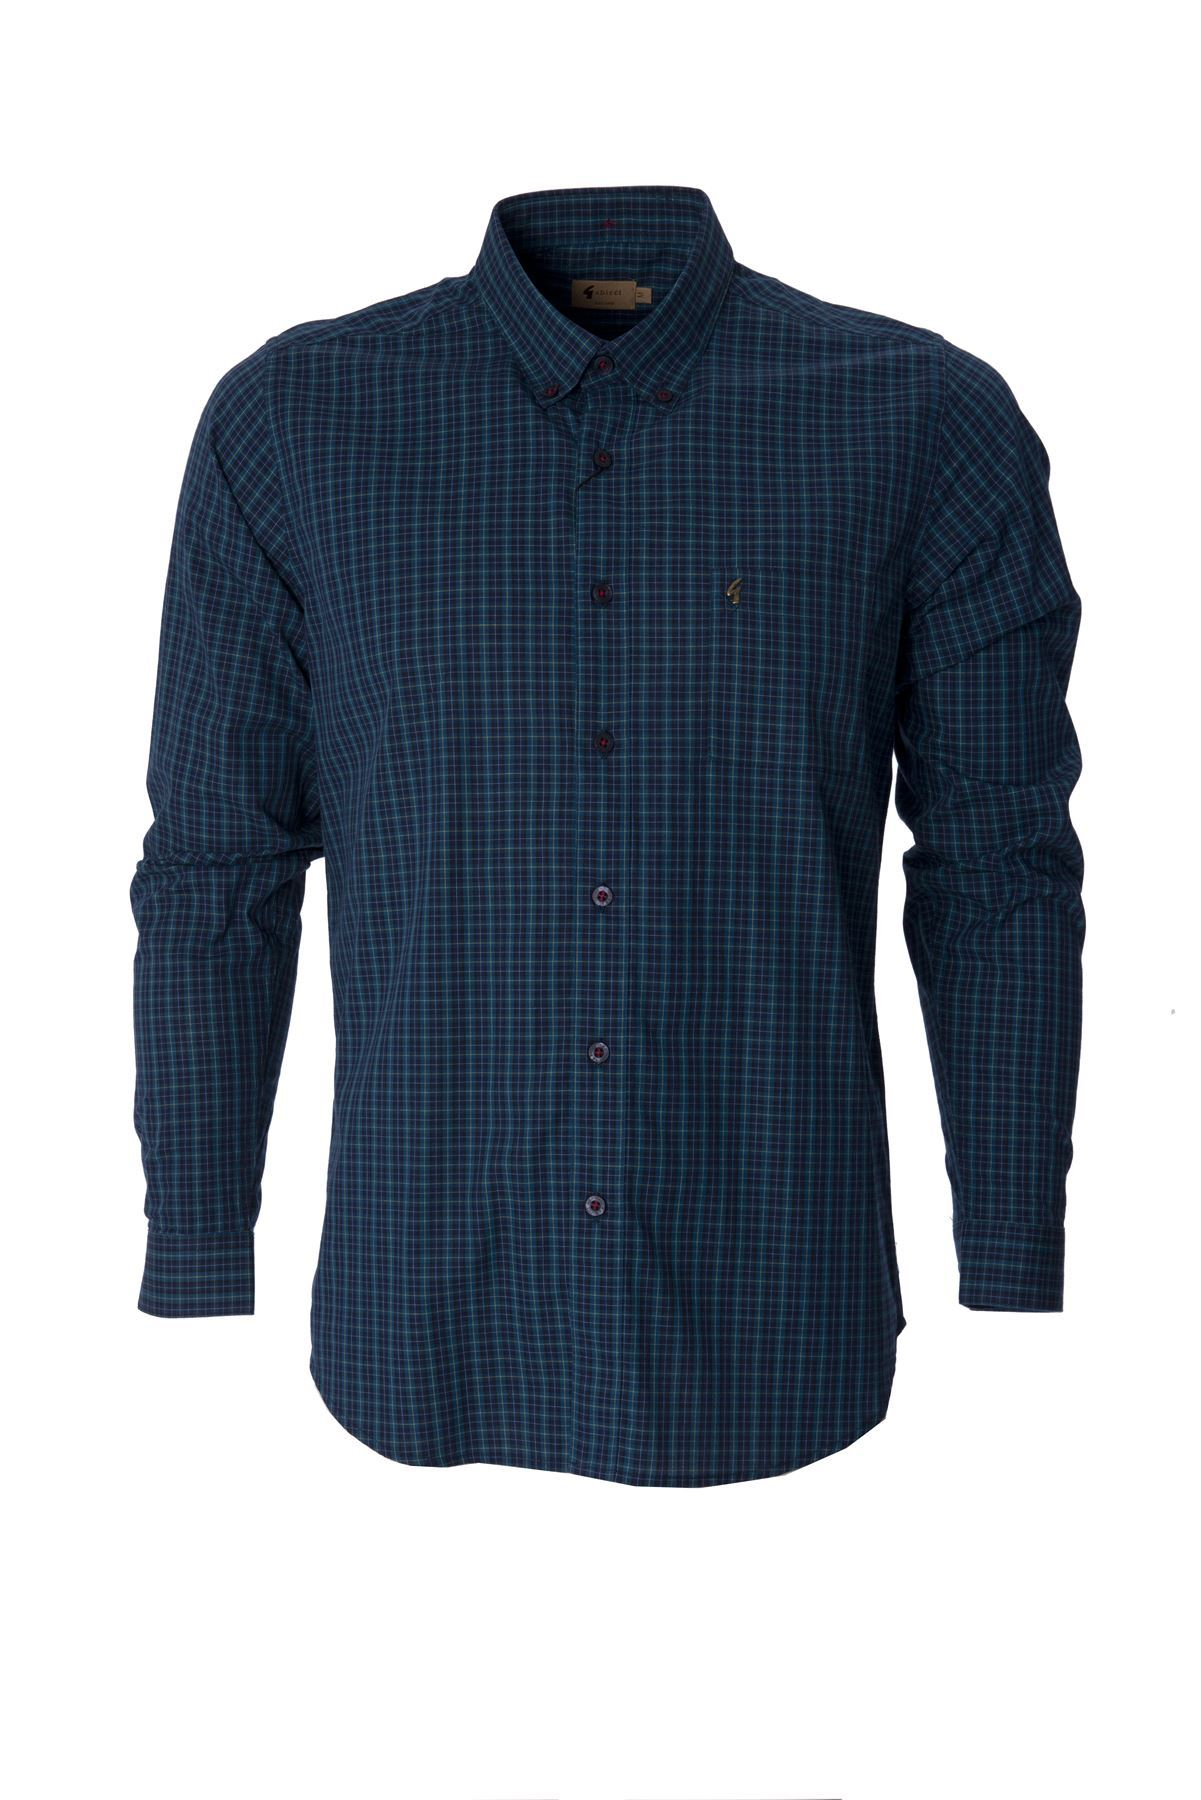 Gabicci mens check shirt button down collared long sleeve for Best casual button down shirts